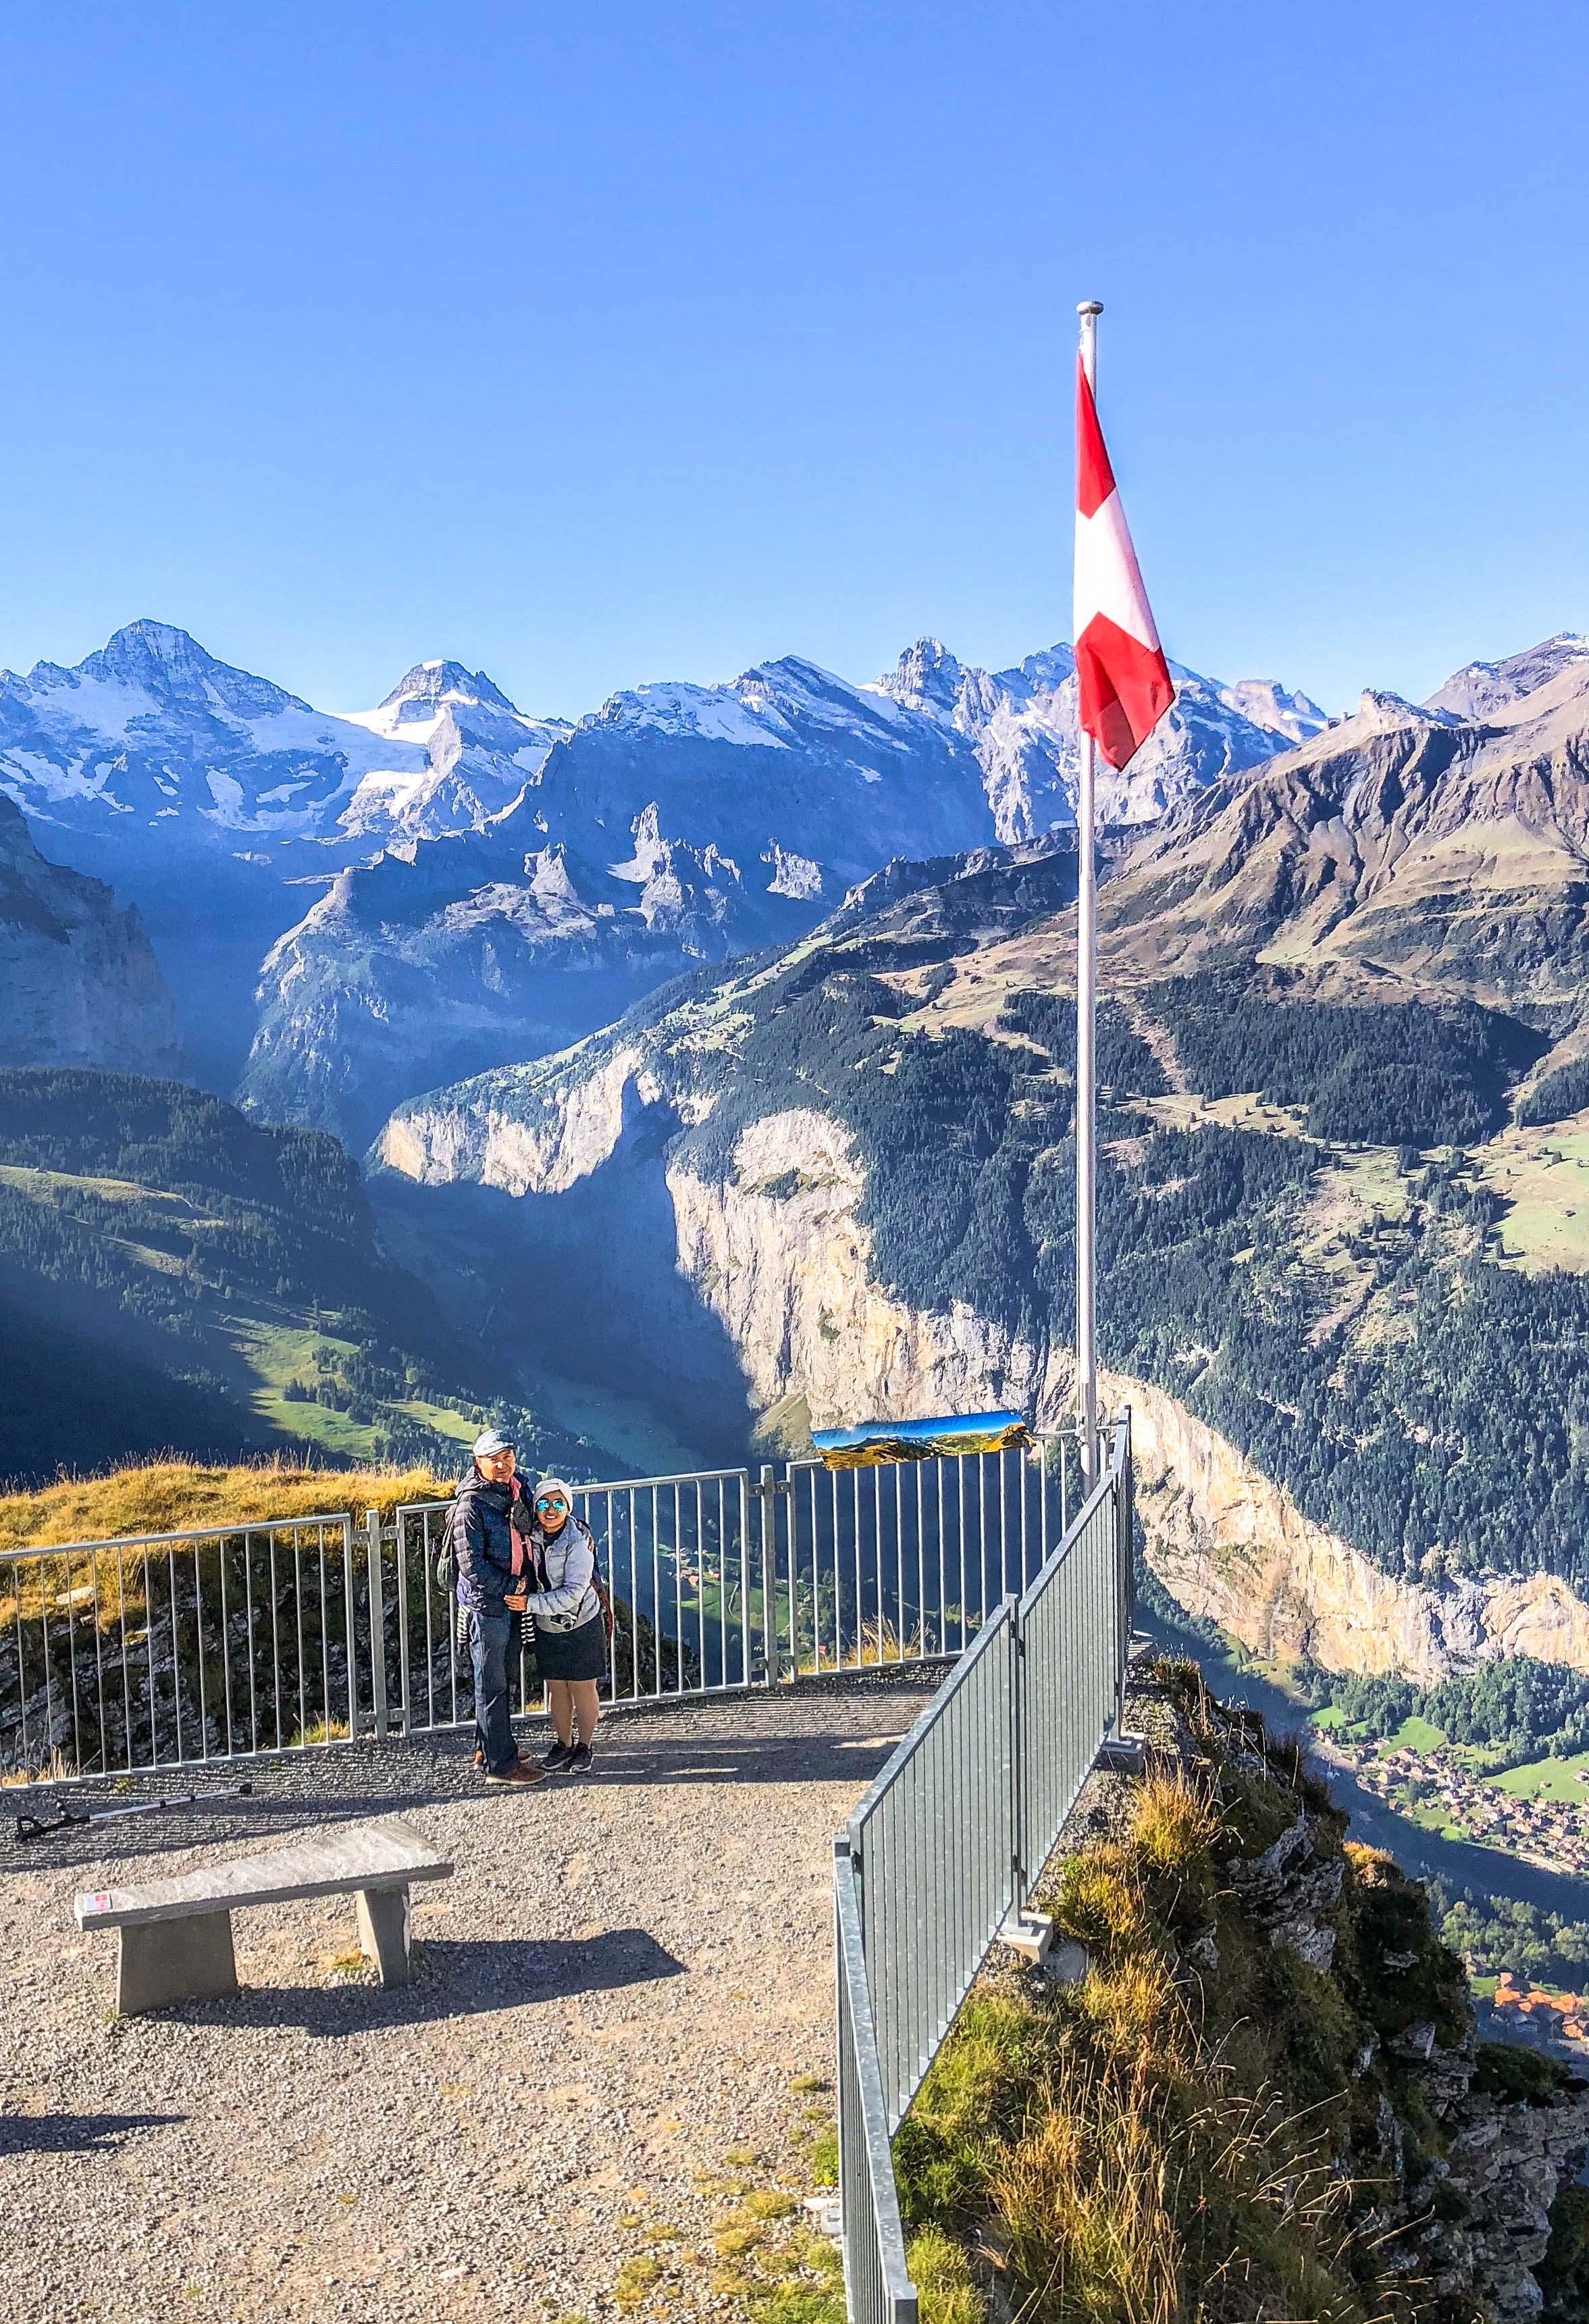 Took a cable car from Wengen to Männlichen, before taking another cable car to Grindelwald.